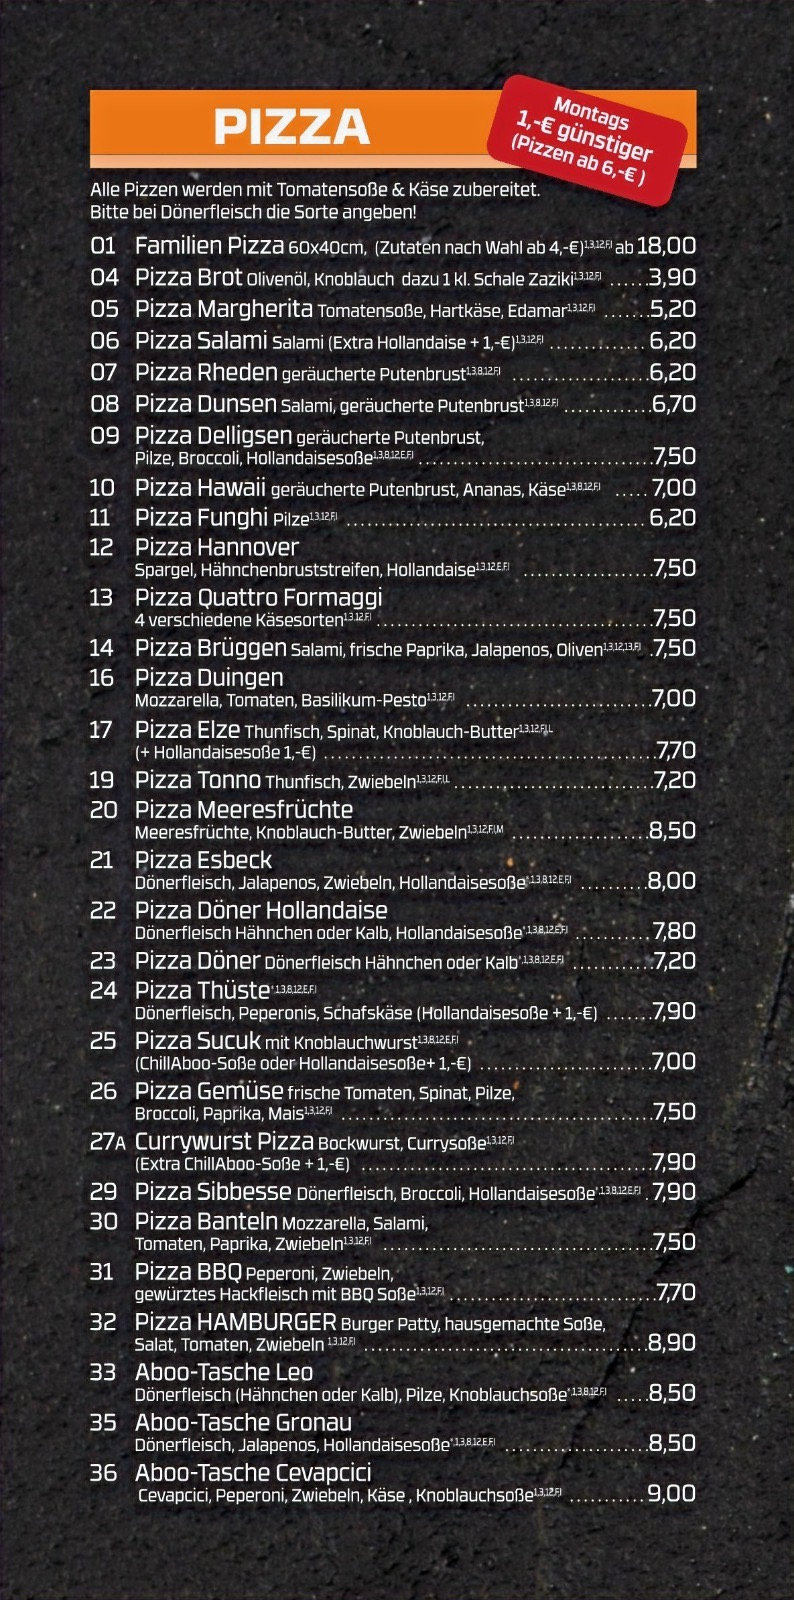 %23pizza%20%23imbiss%20%23aboo%20%23in%2